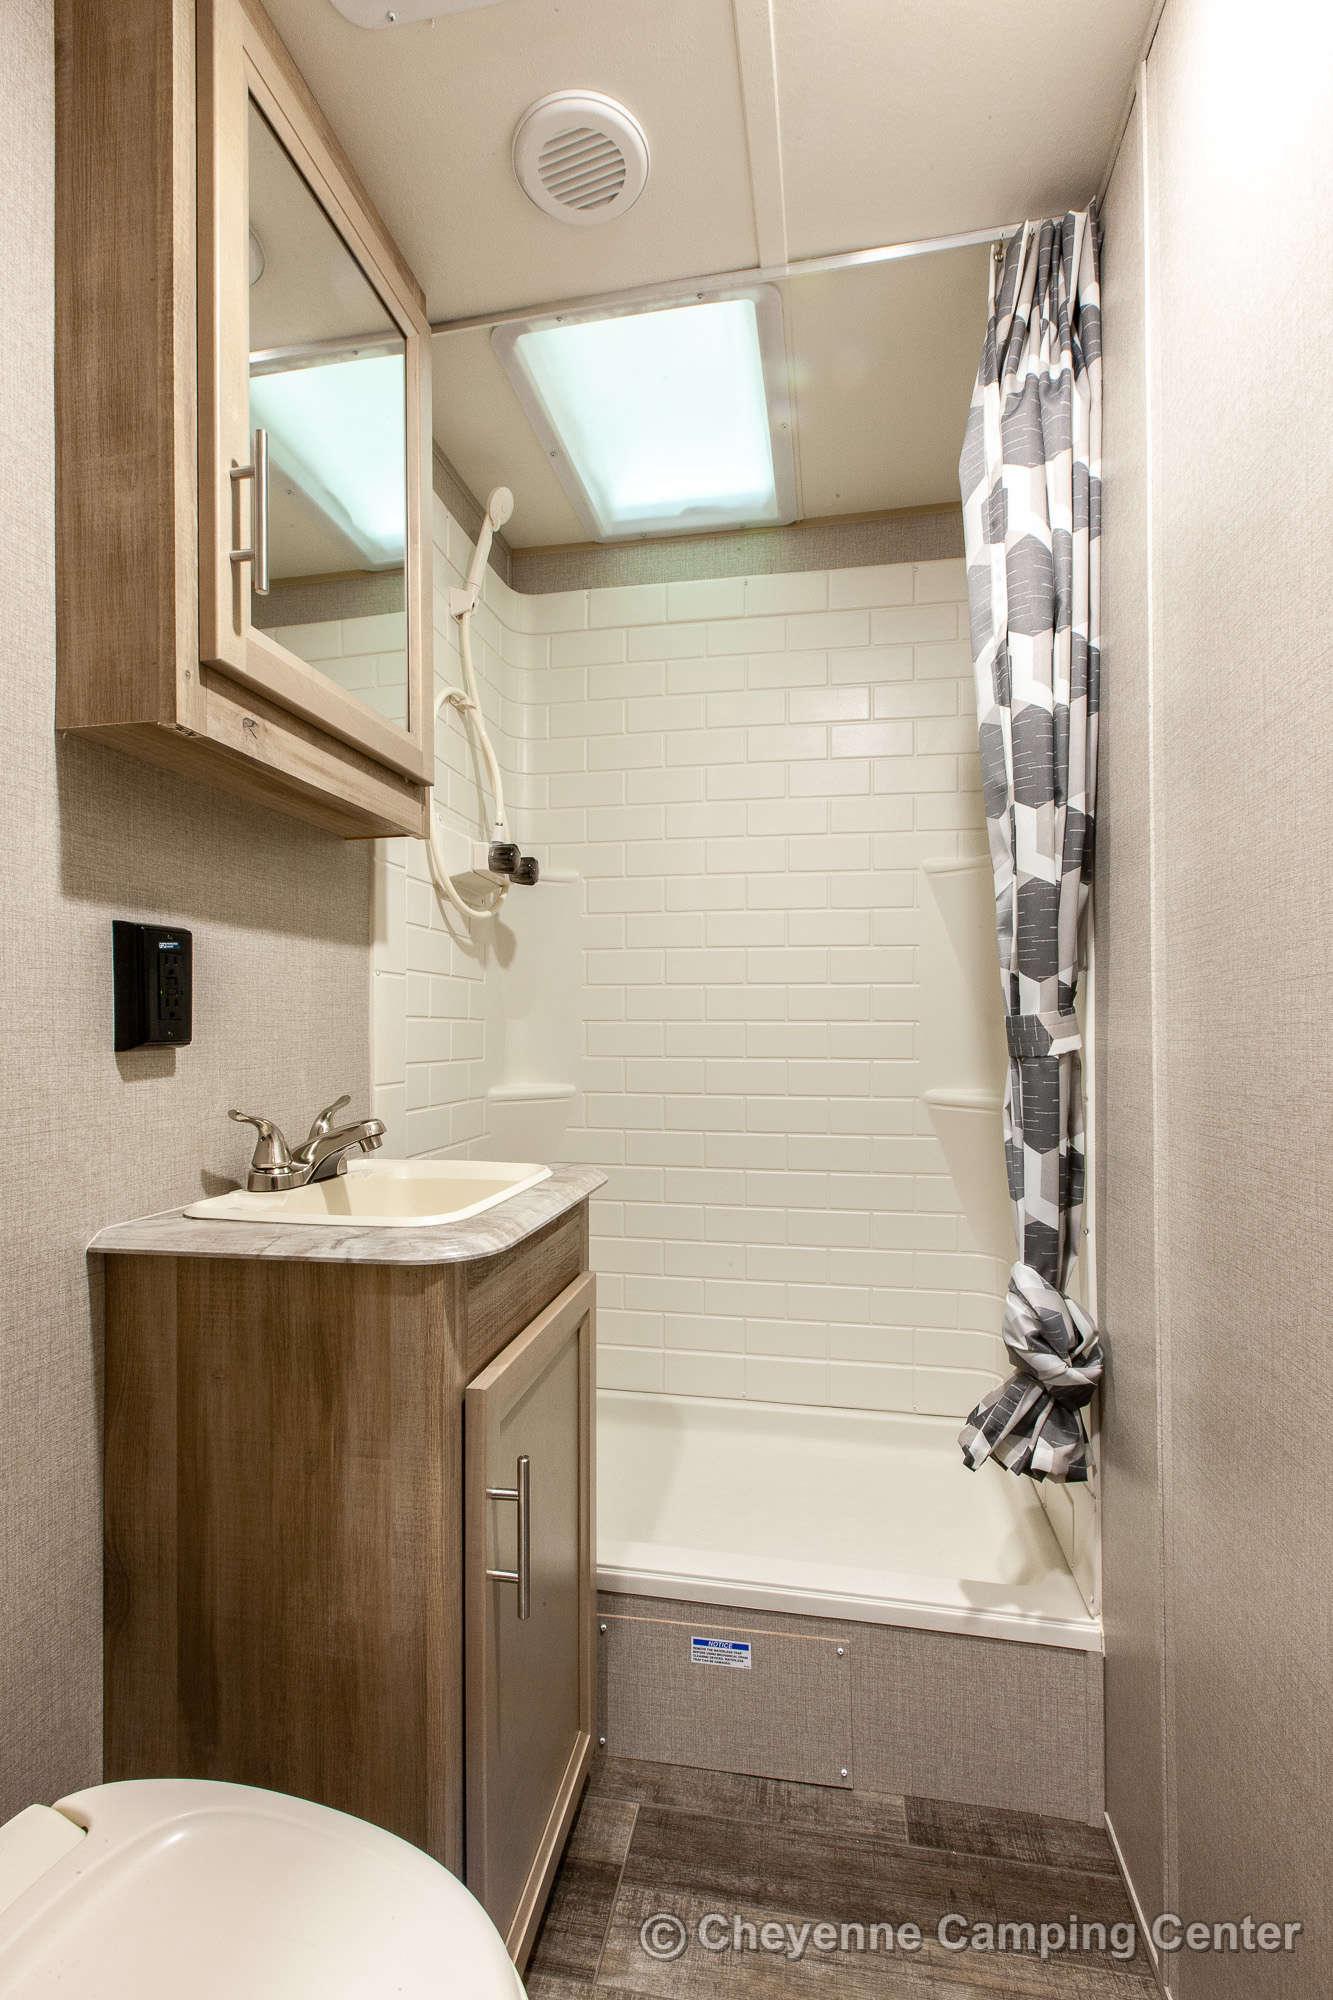 2021 Coachmen Catalina Legacy Edition 303QBCK Bunkhouse Travel Trailer Interior Image